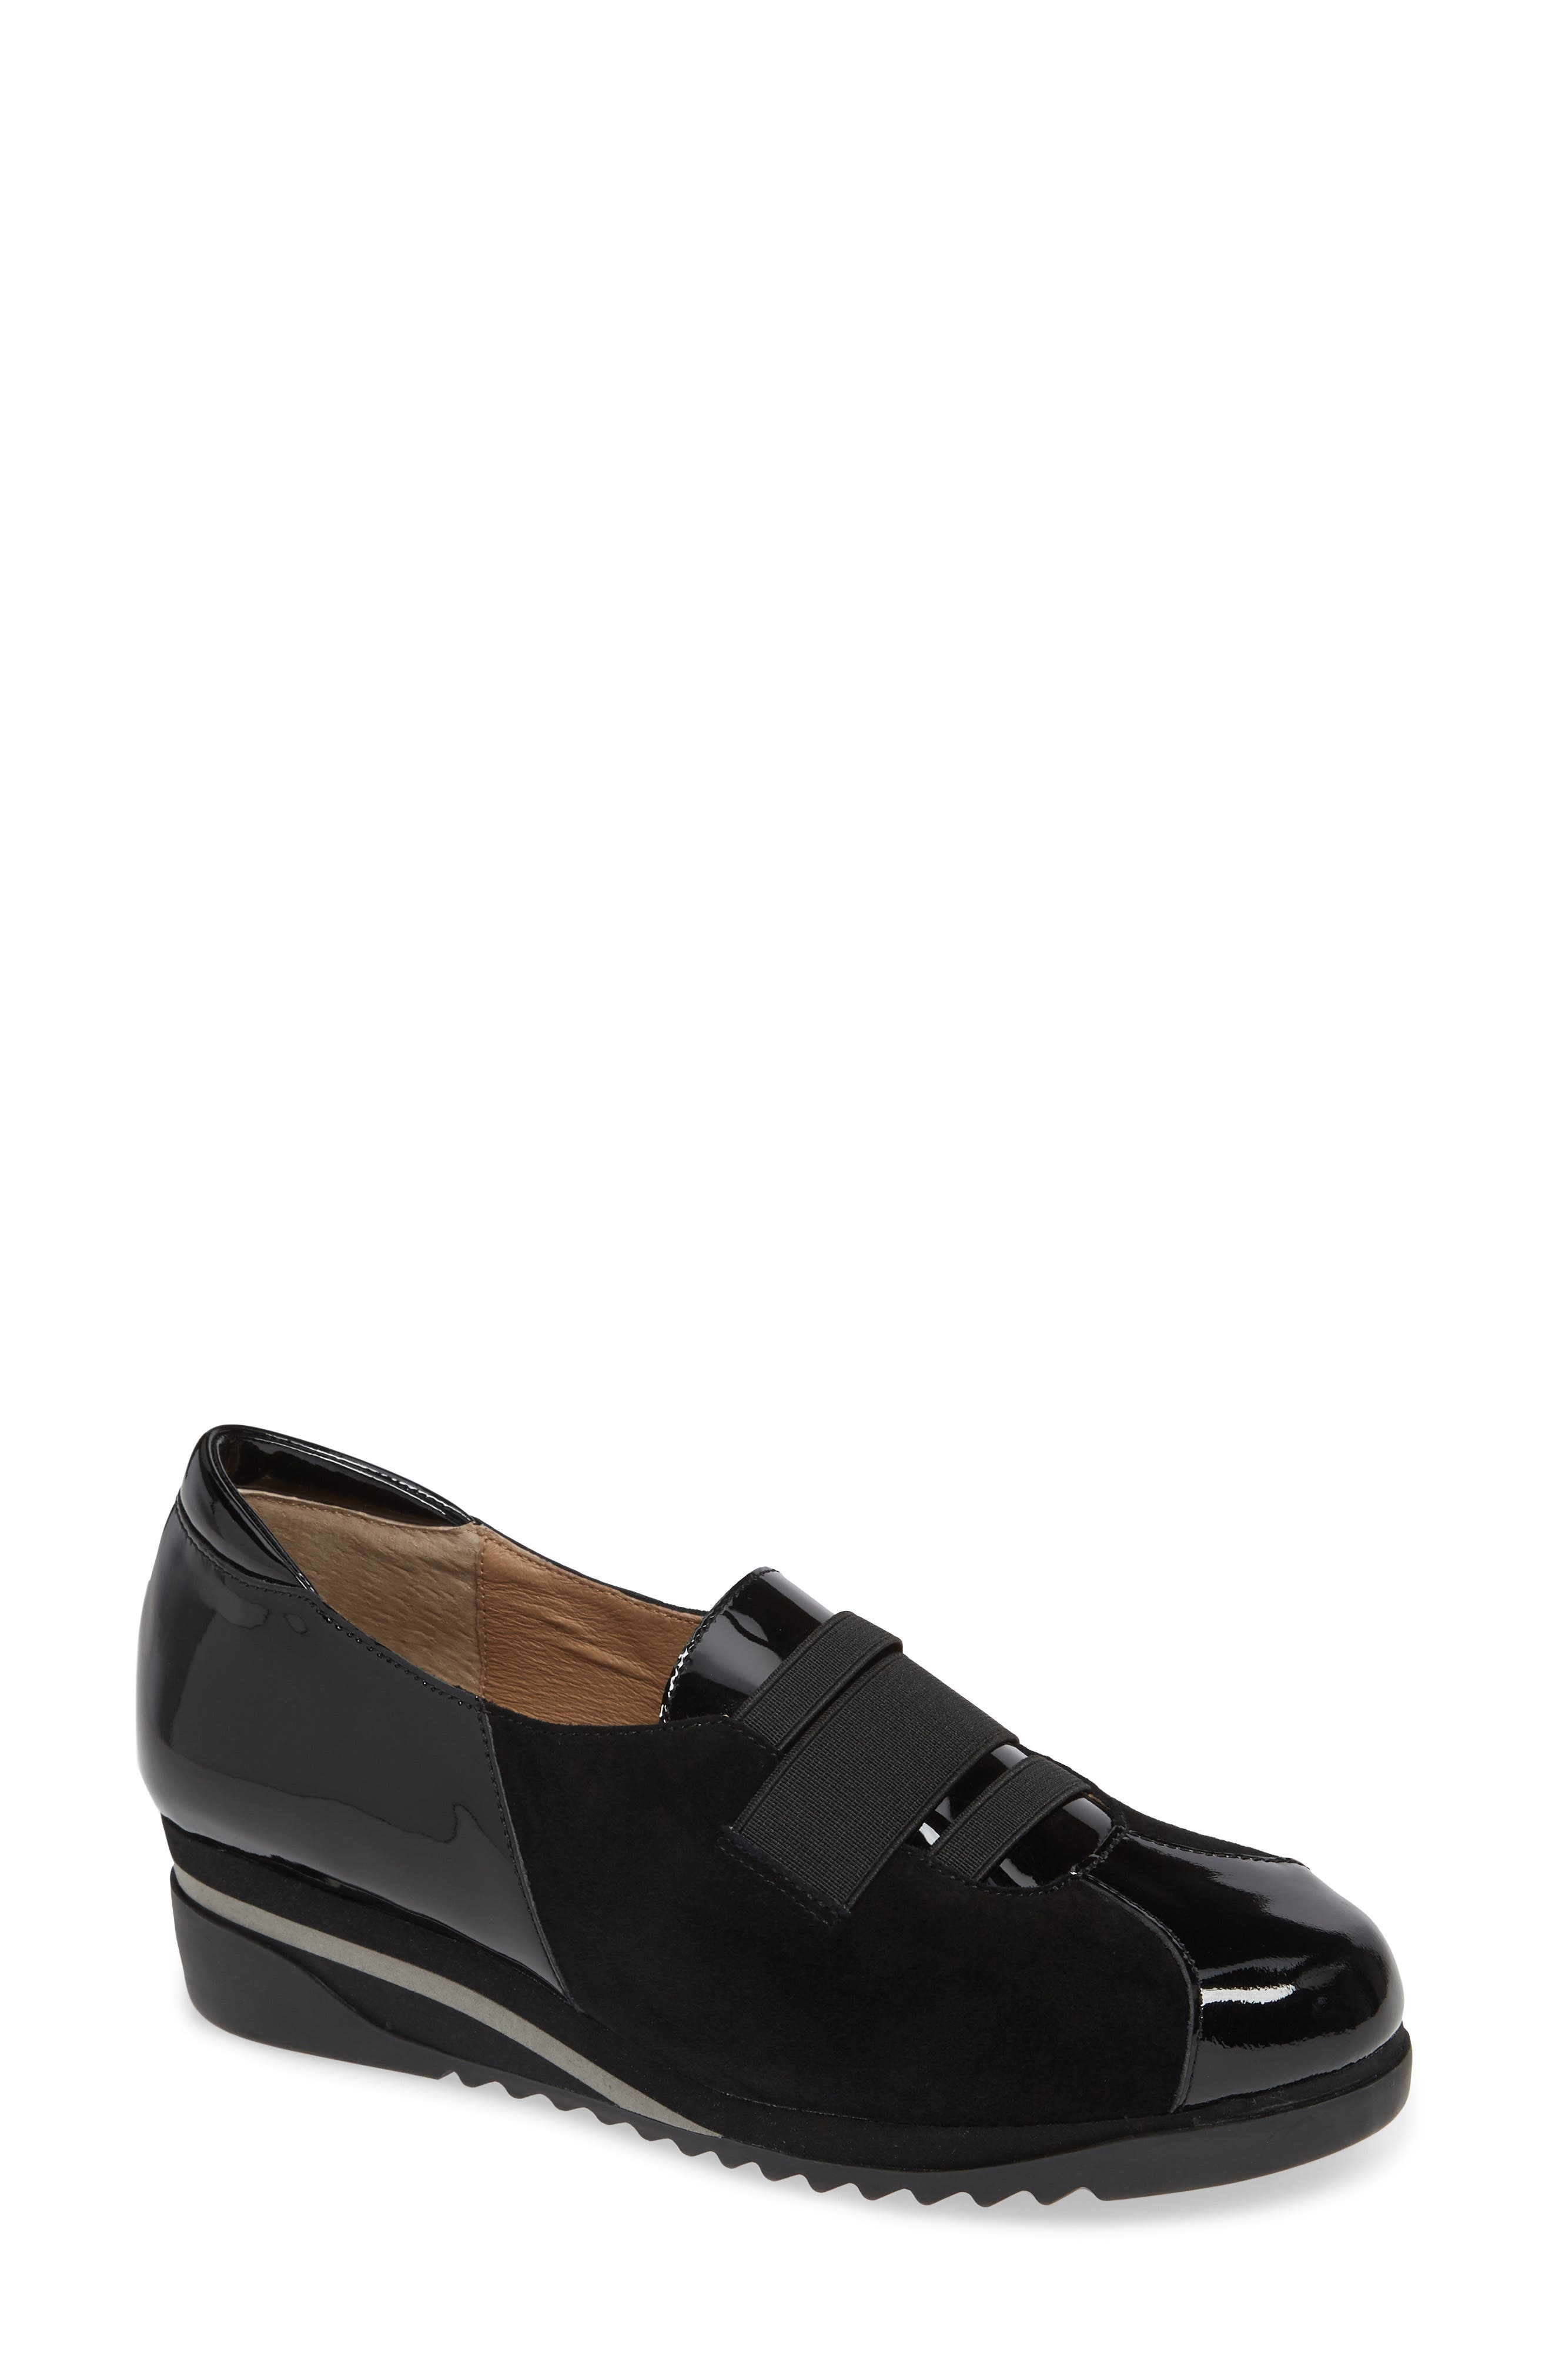 Bettye Muller Concepts Taytum Sneaker- Black